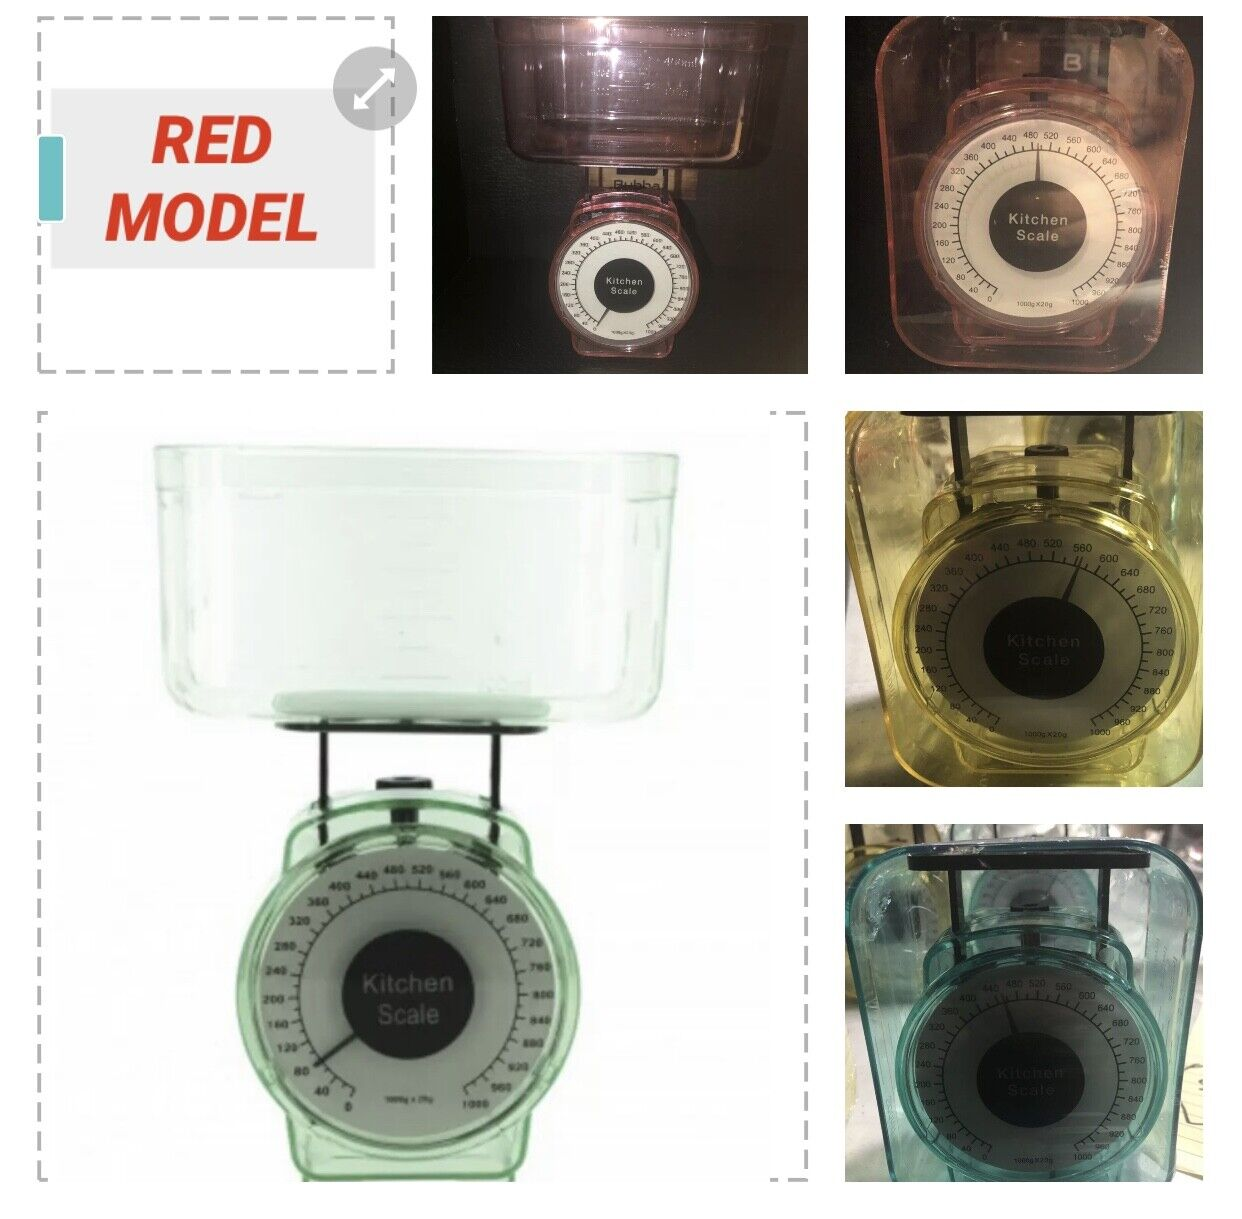 red mechanical scale accurate 1000 grams w